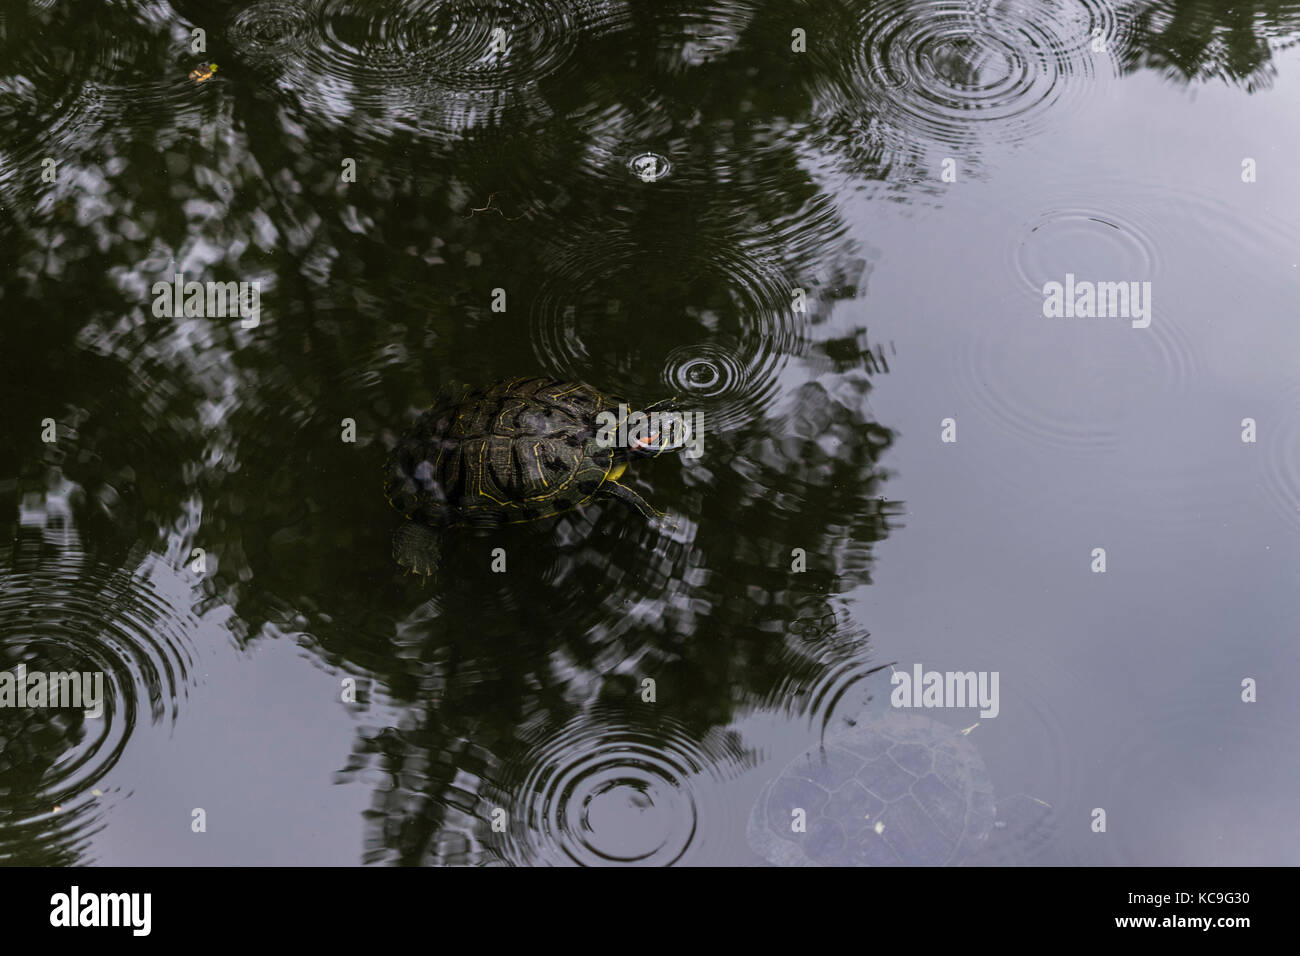 High Angle View Of Turtle Swimming In Pond During Summer Rain - Stock Image